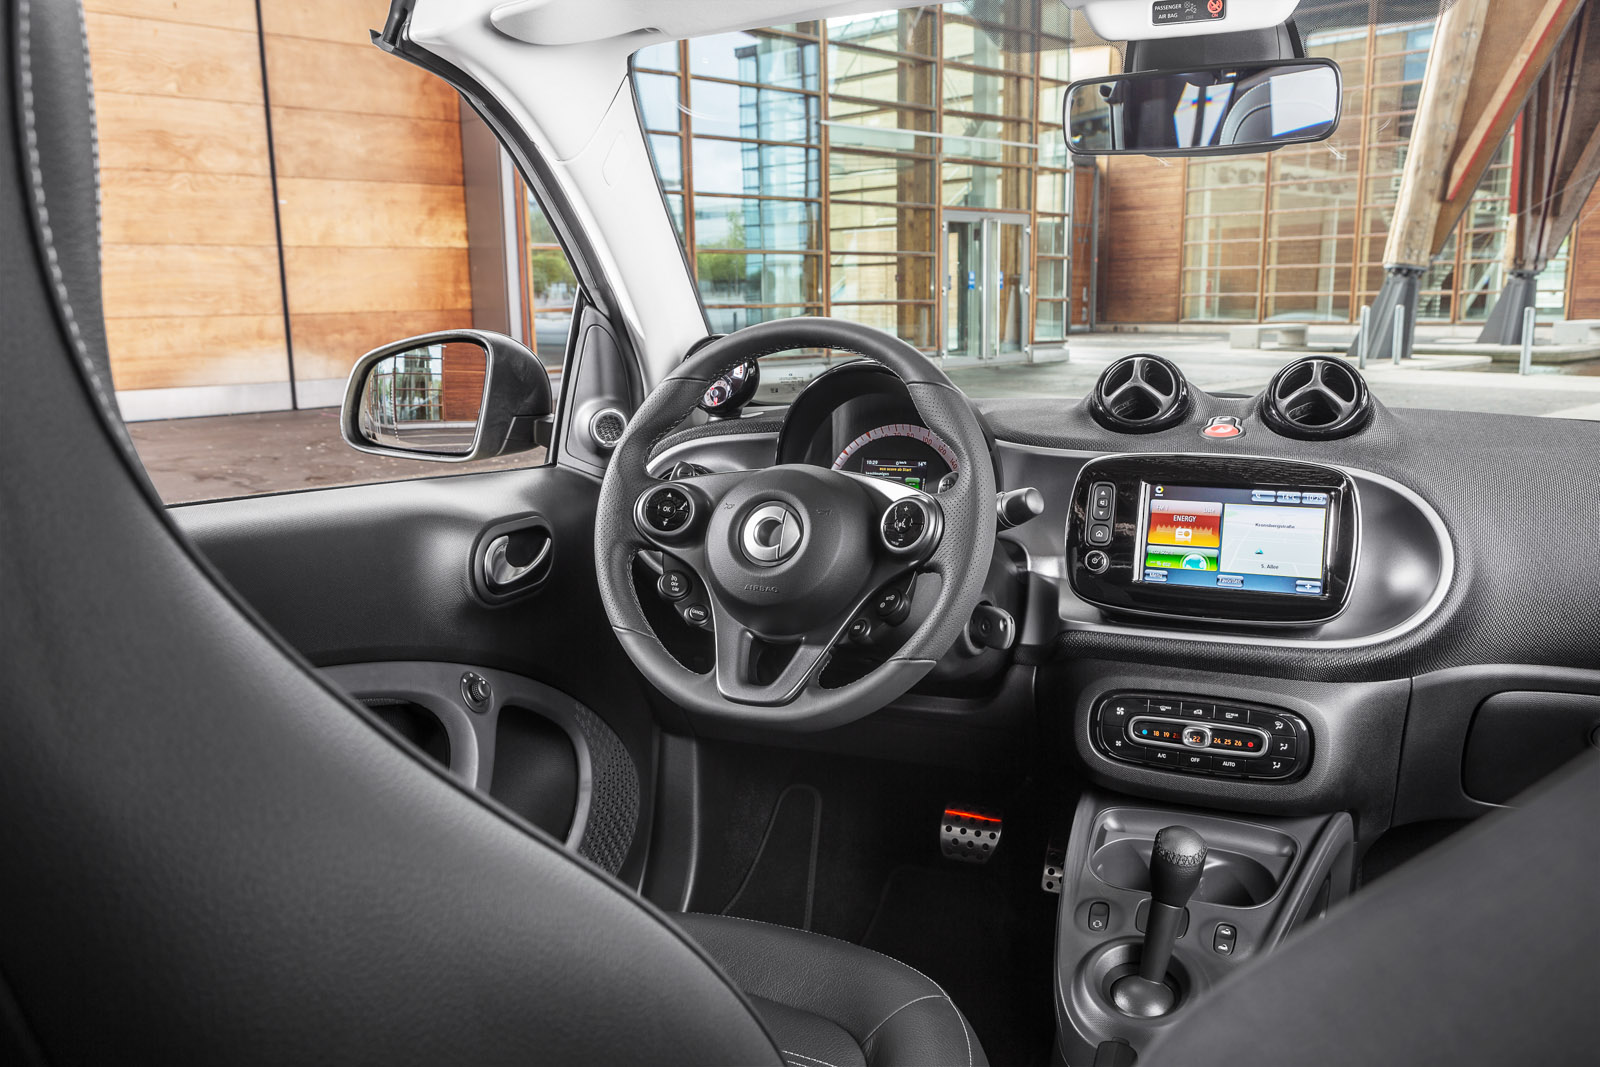 2017 smart fortwo cabrio review gtspirit for Smart interieur